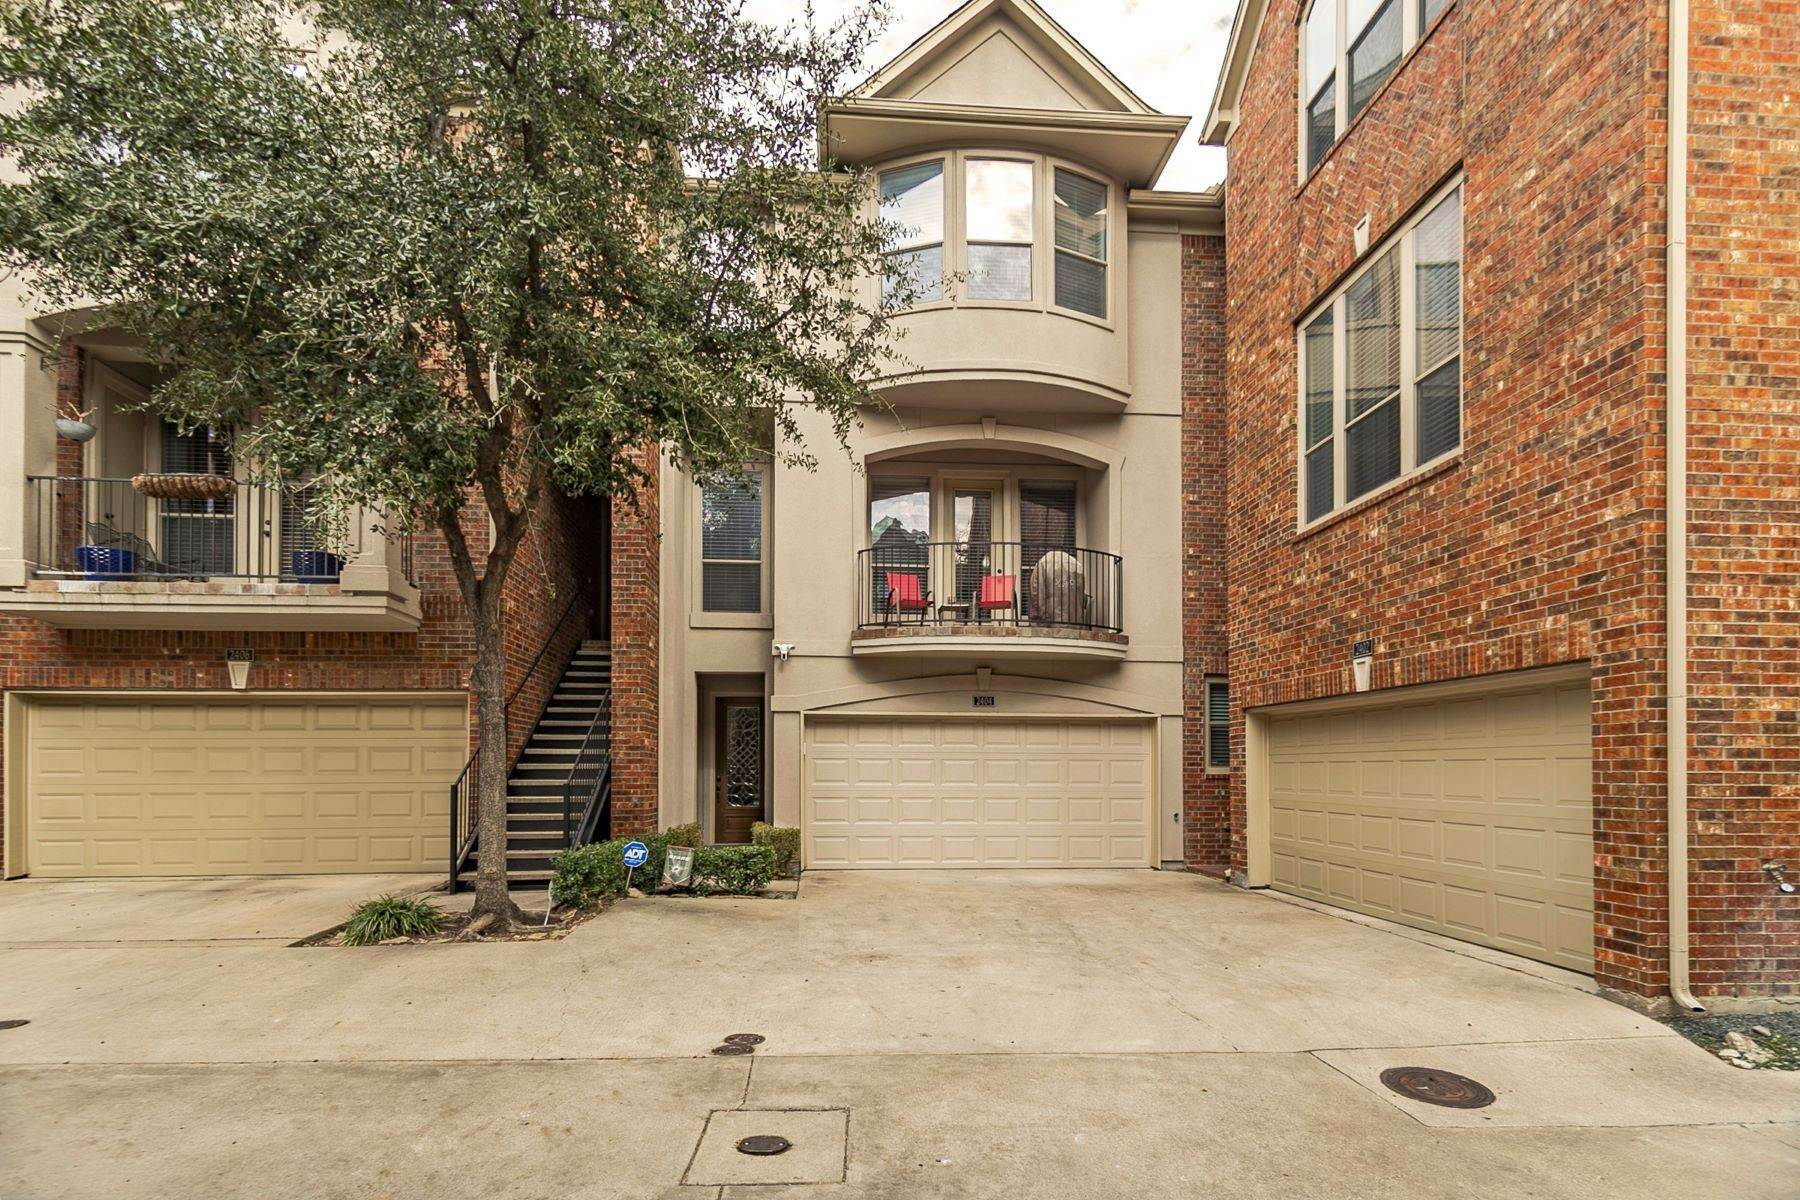 townhouses for Sale at 2404 Wild Cherry Way, Dallas, TX, 75206 2404 Wild Cherry Way Dallas, Texas 75206 United States